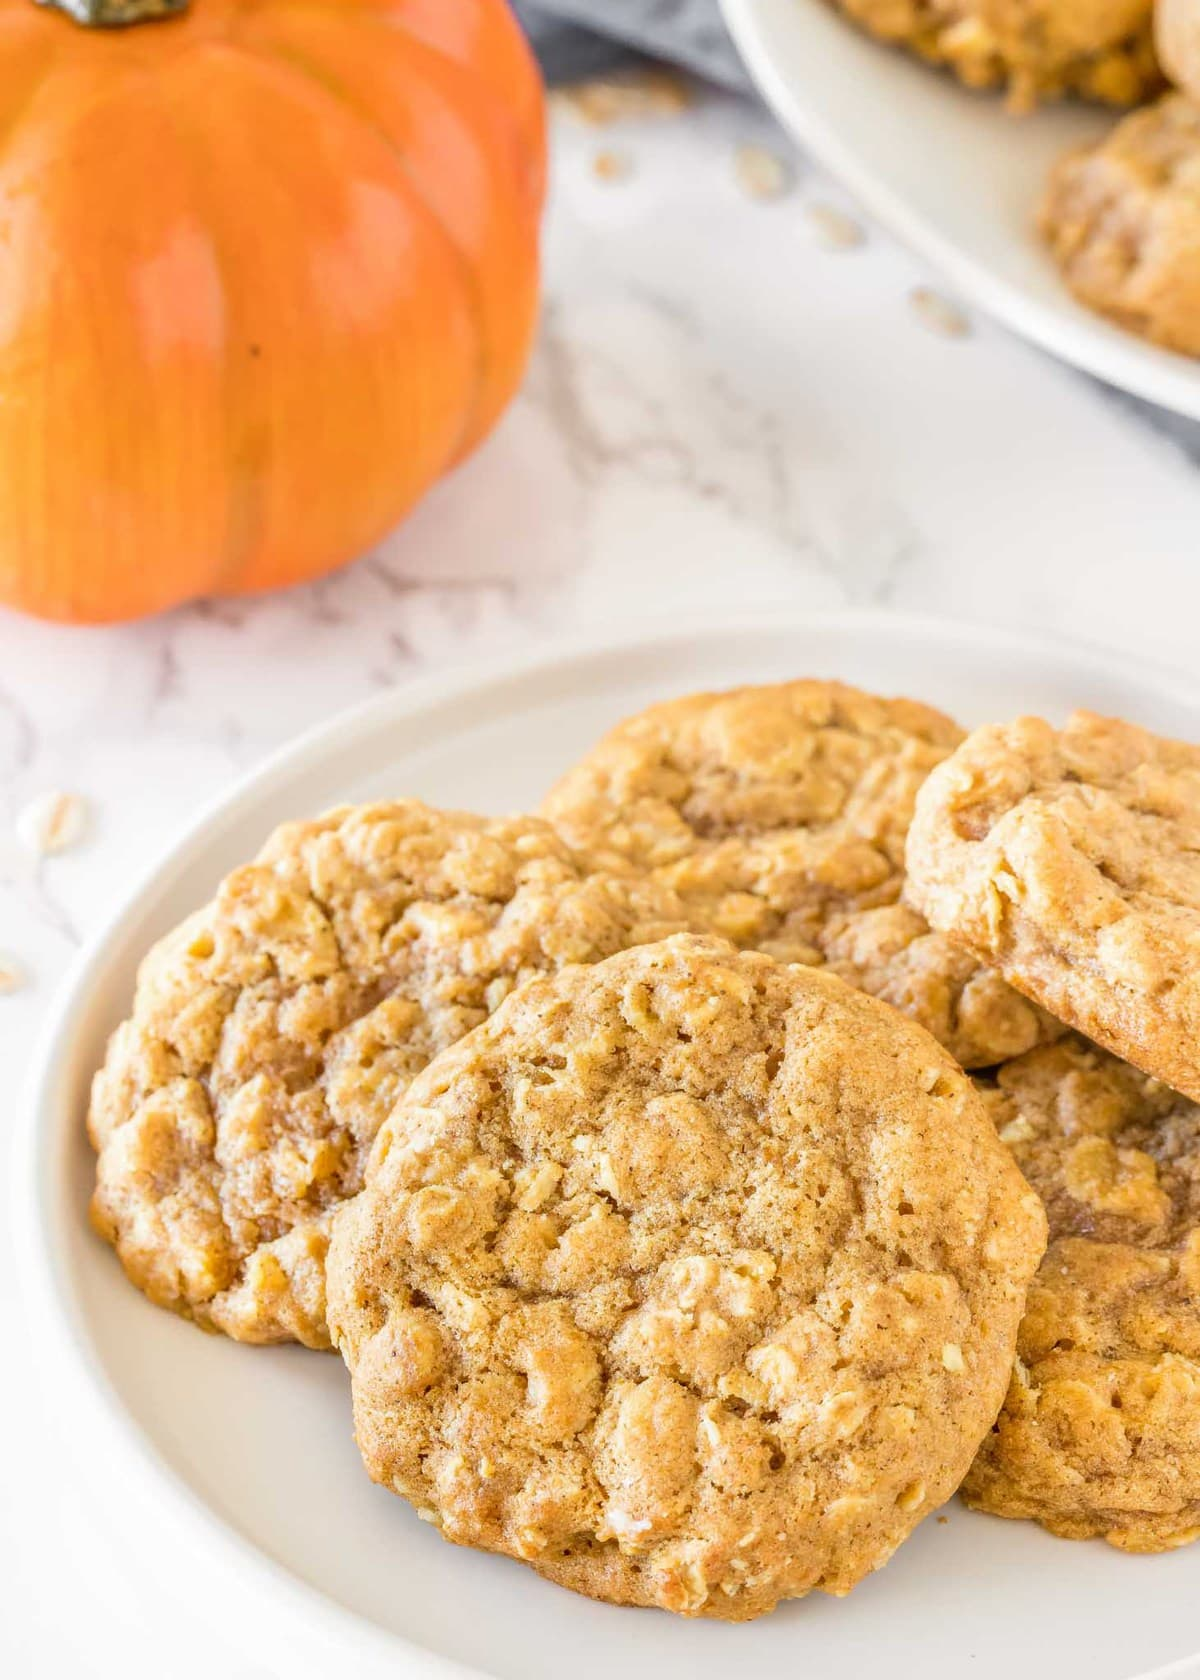 Pumpkin oatmeal cookie recipe on white plate